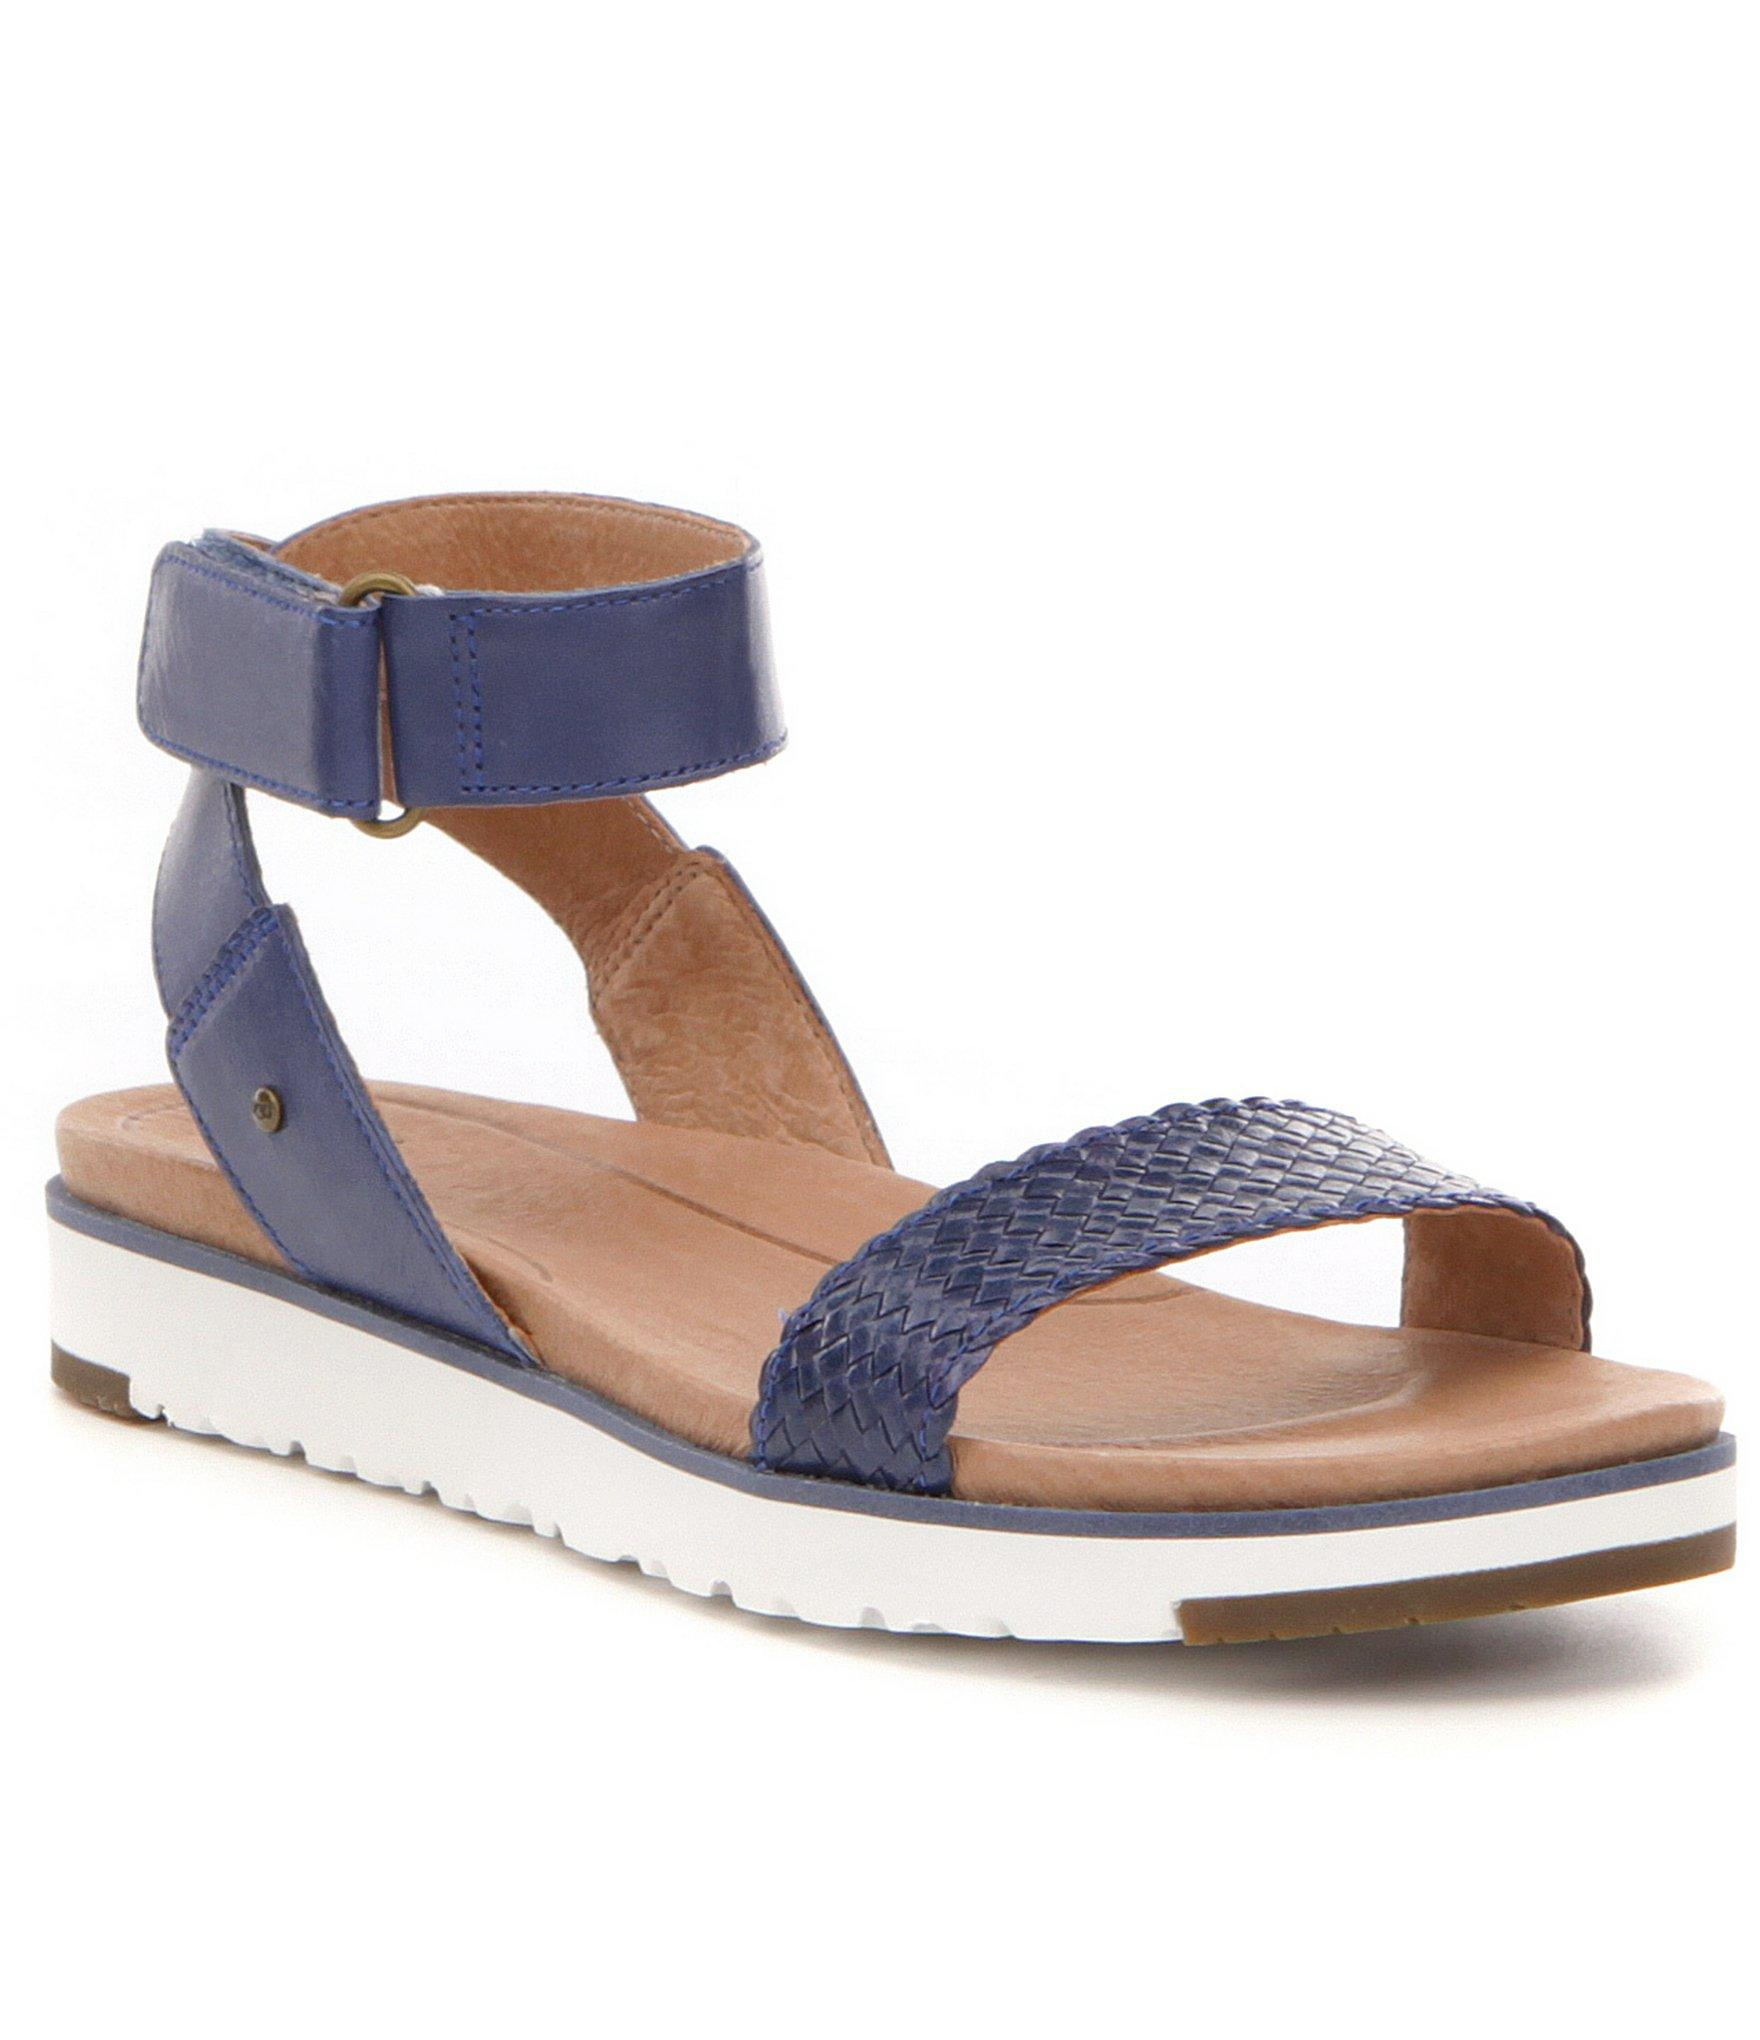 e19a108e454 Ugg Blue ® Laddie Leather Sandals